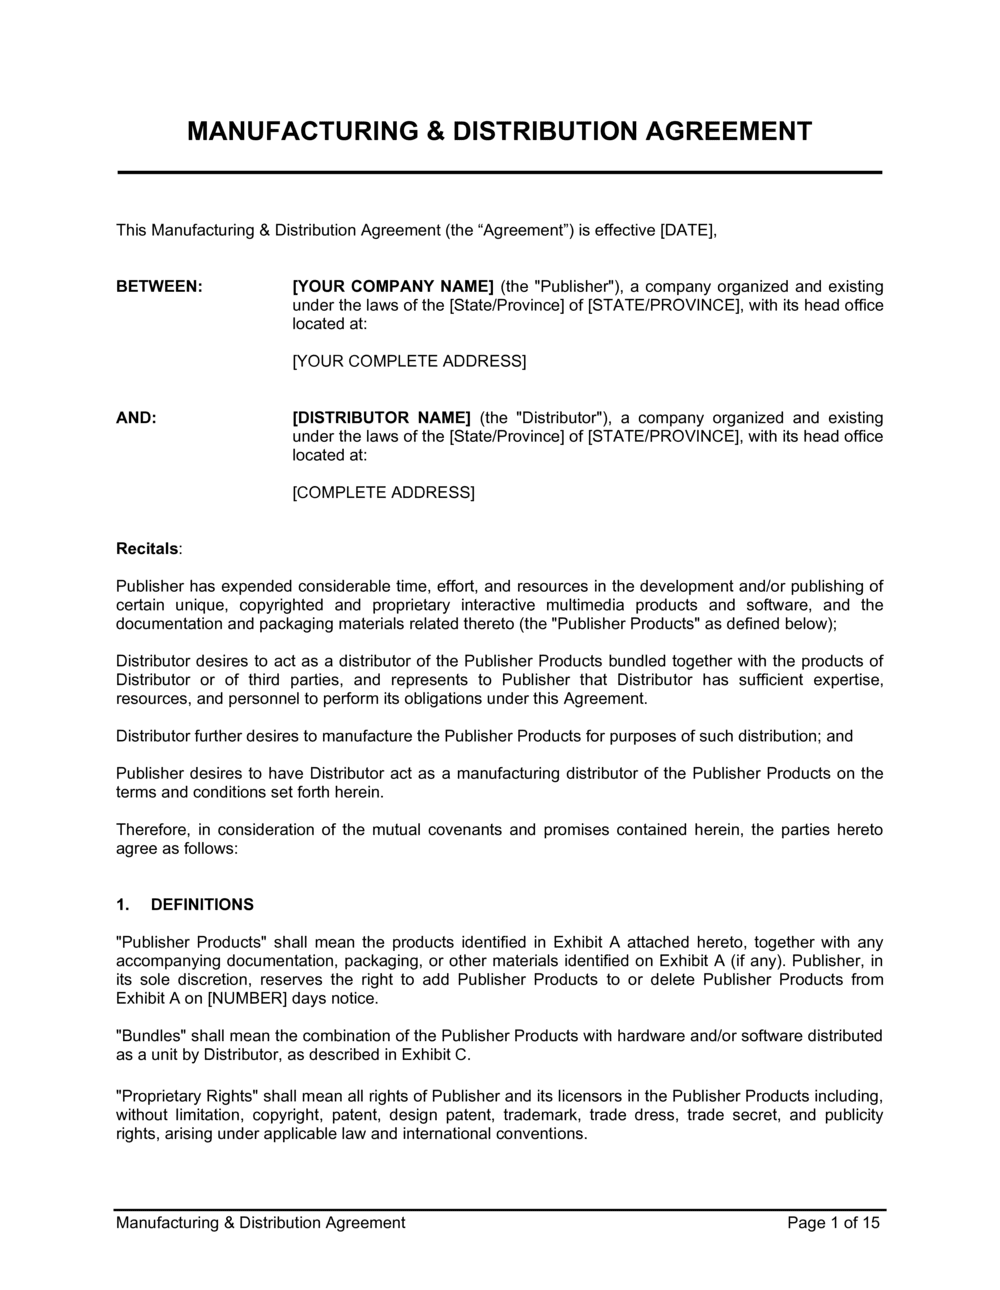 Contract Manufacturing Agreement Template from templates.business-in-a-box.com